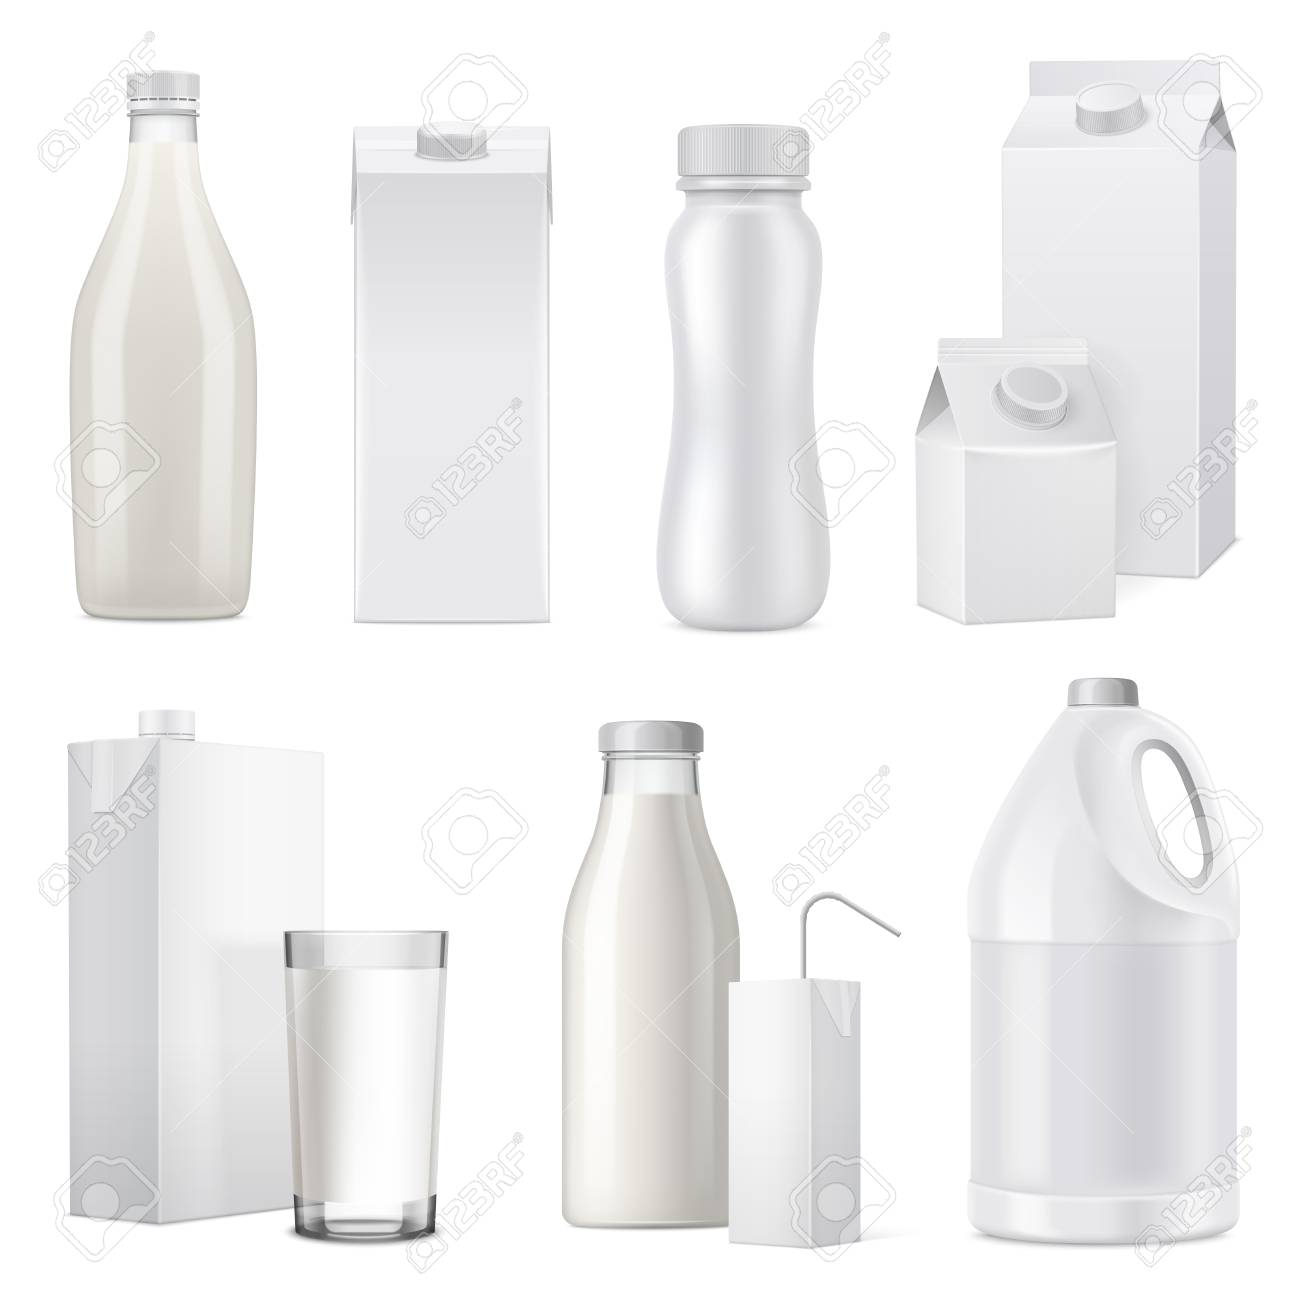 Isolated white realistic milk bottle package icon set from glass plastic and paper vector illustration - 112289588